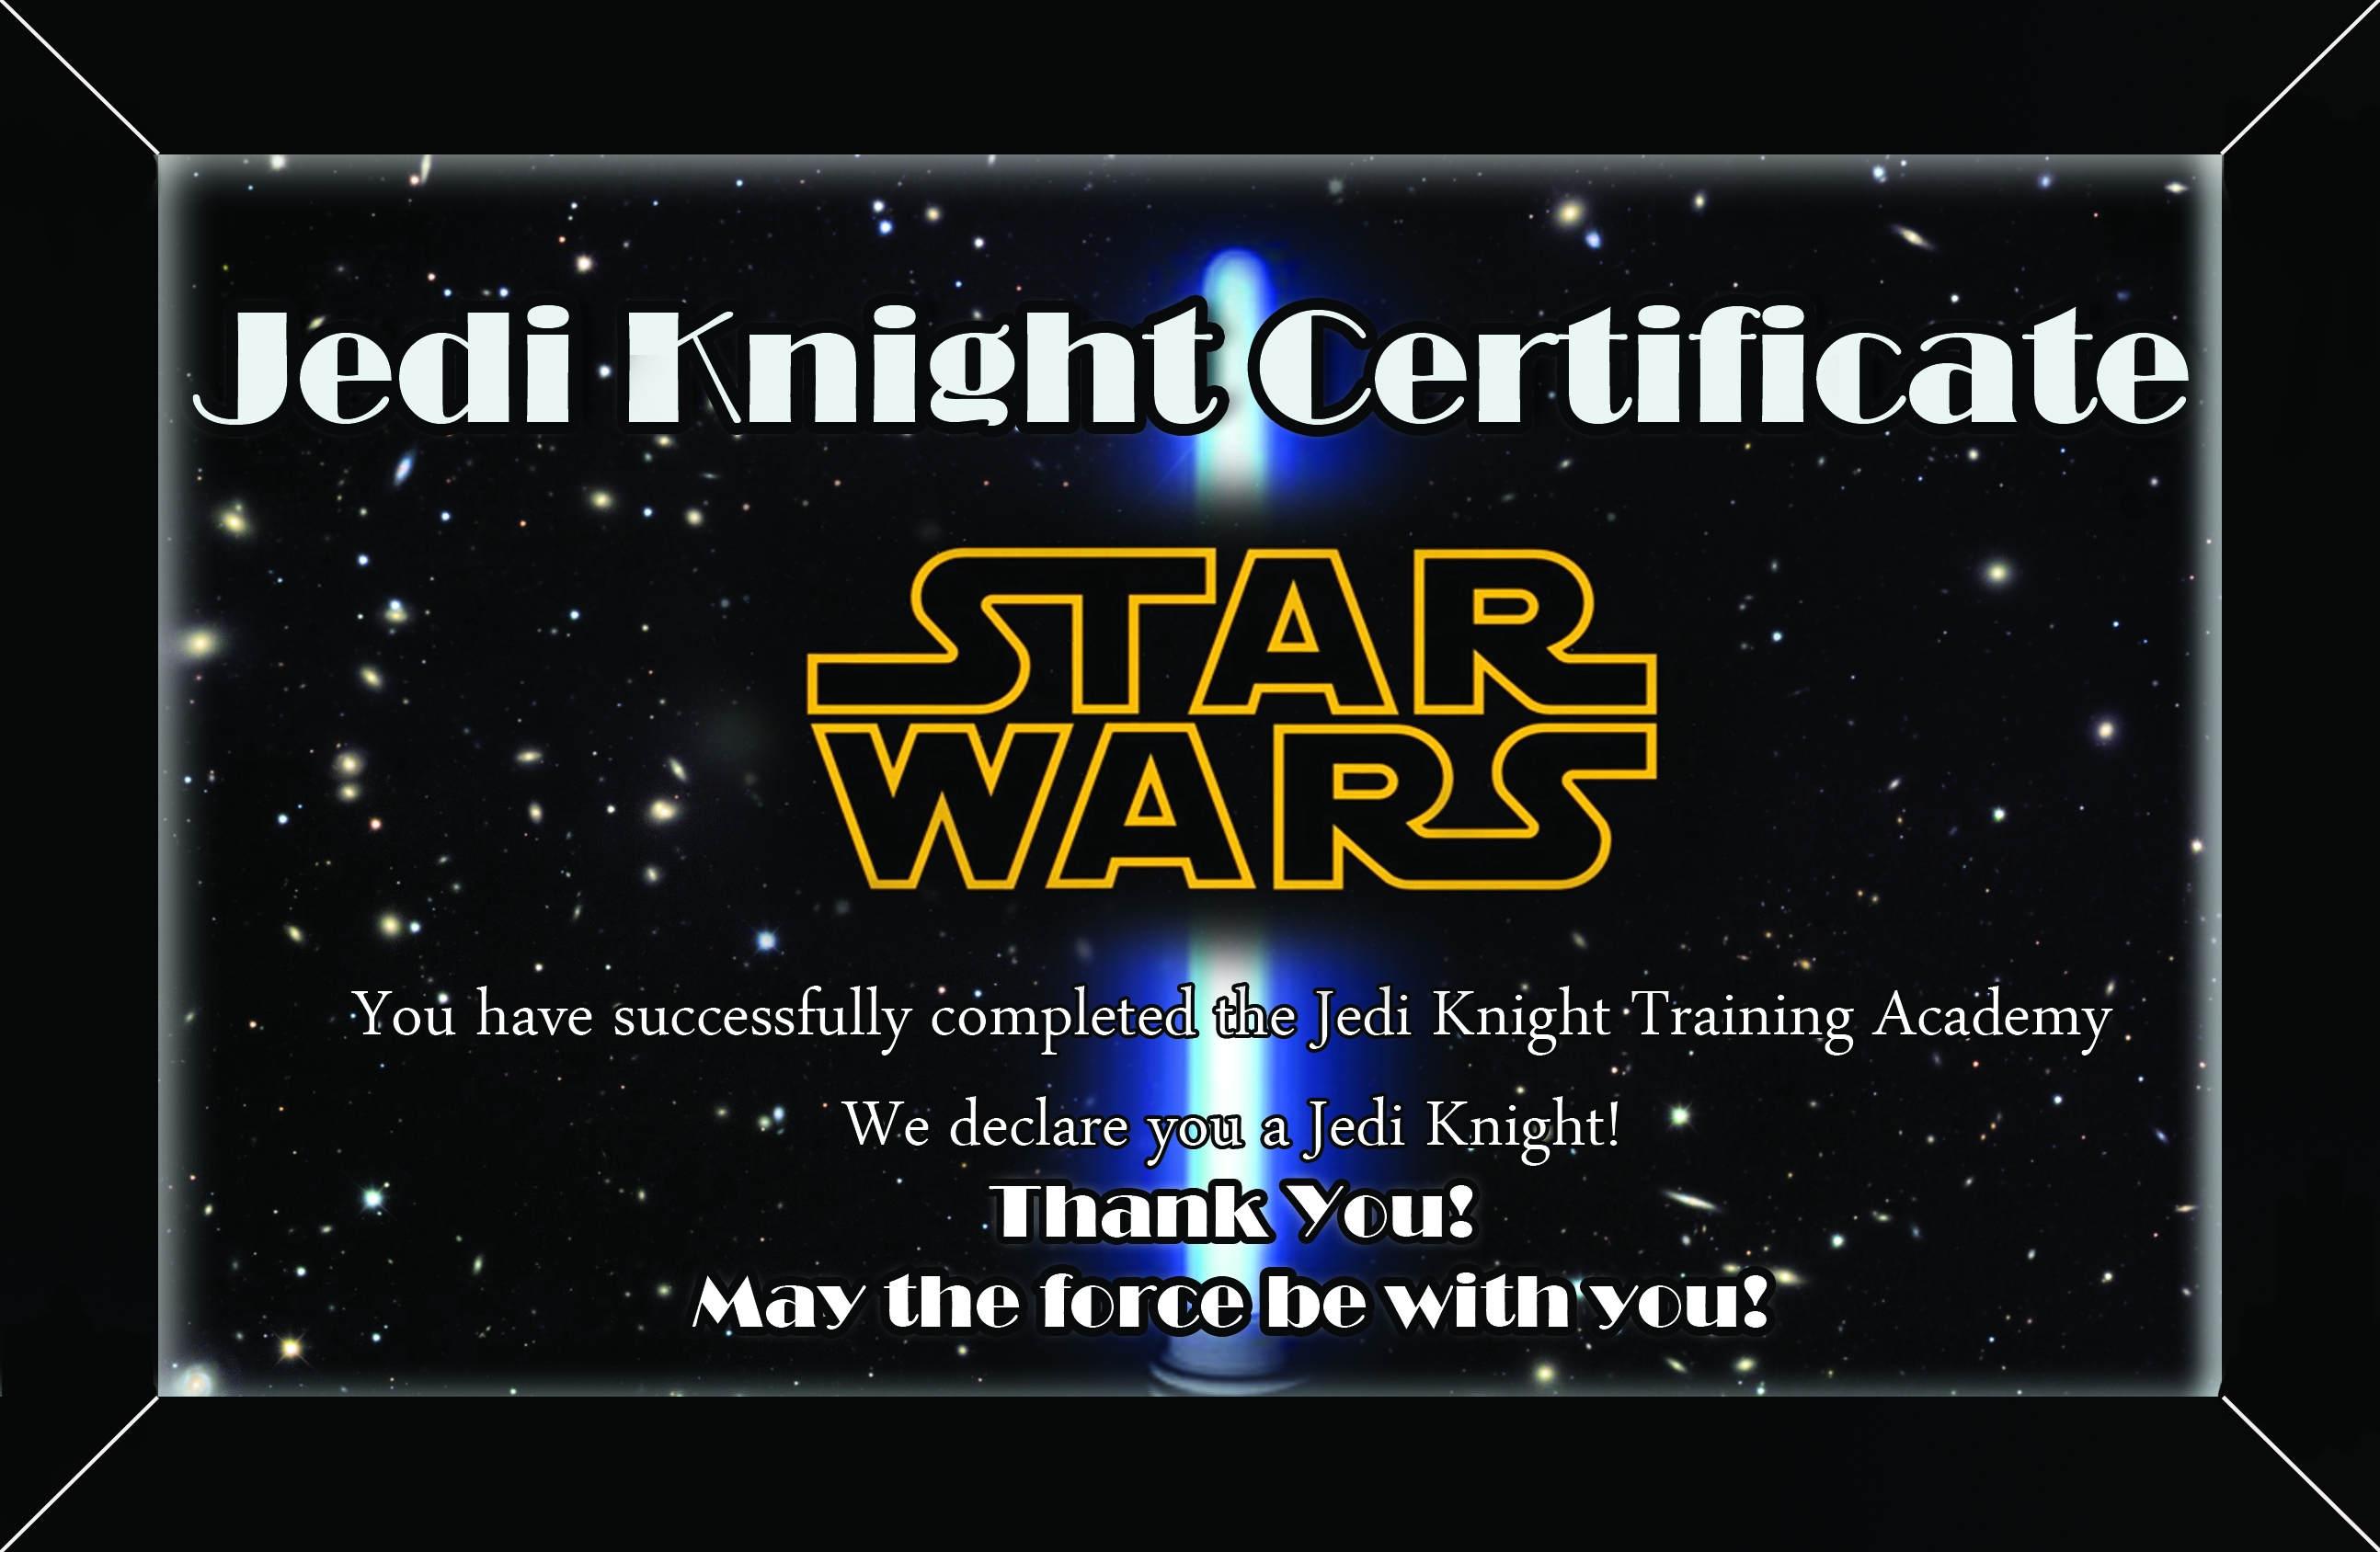 Star wars party ideas for kids toronto gta for Star wars jedi certificate template free